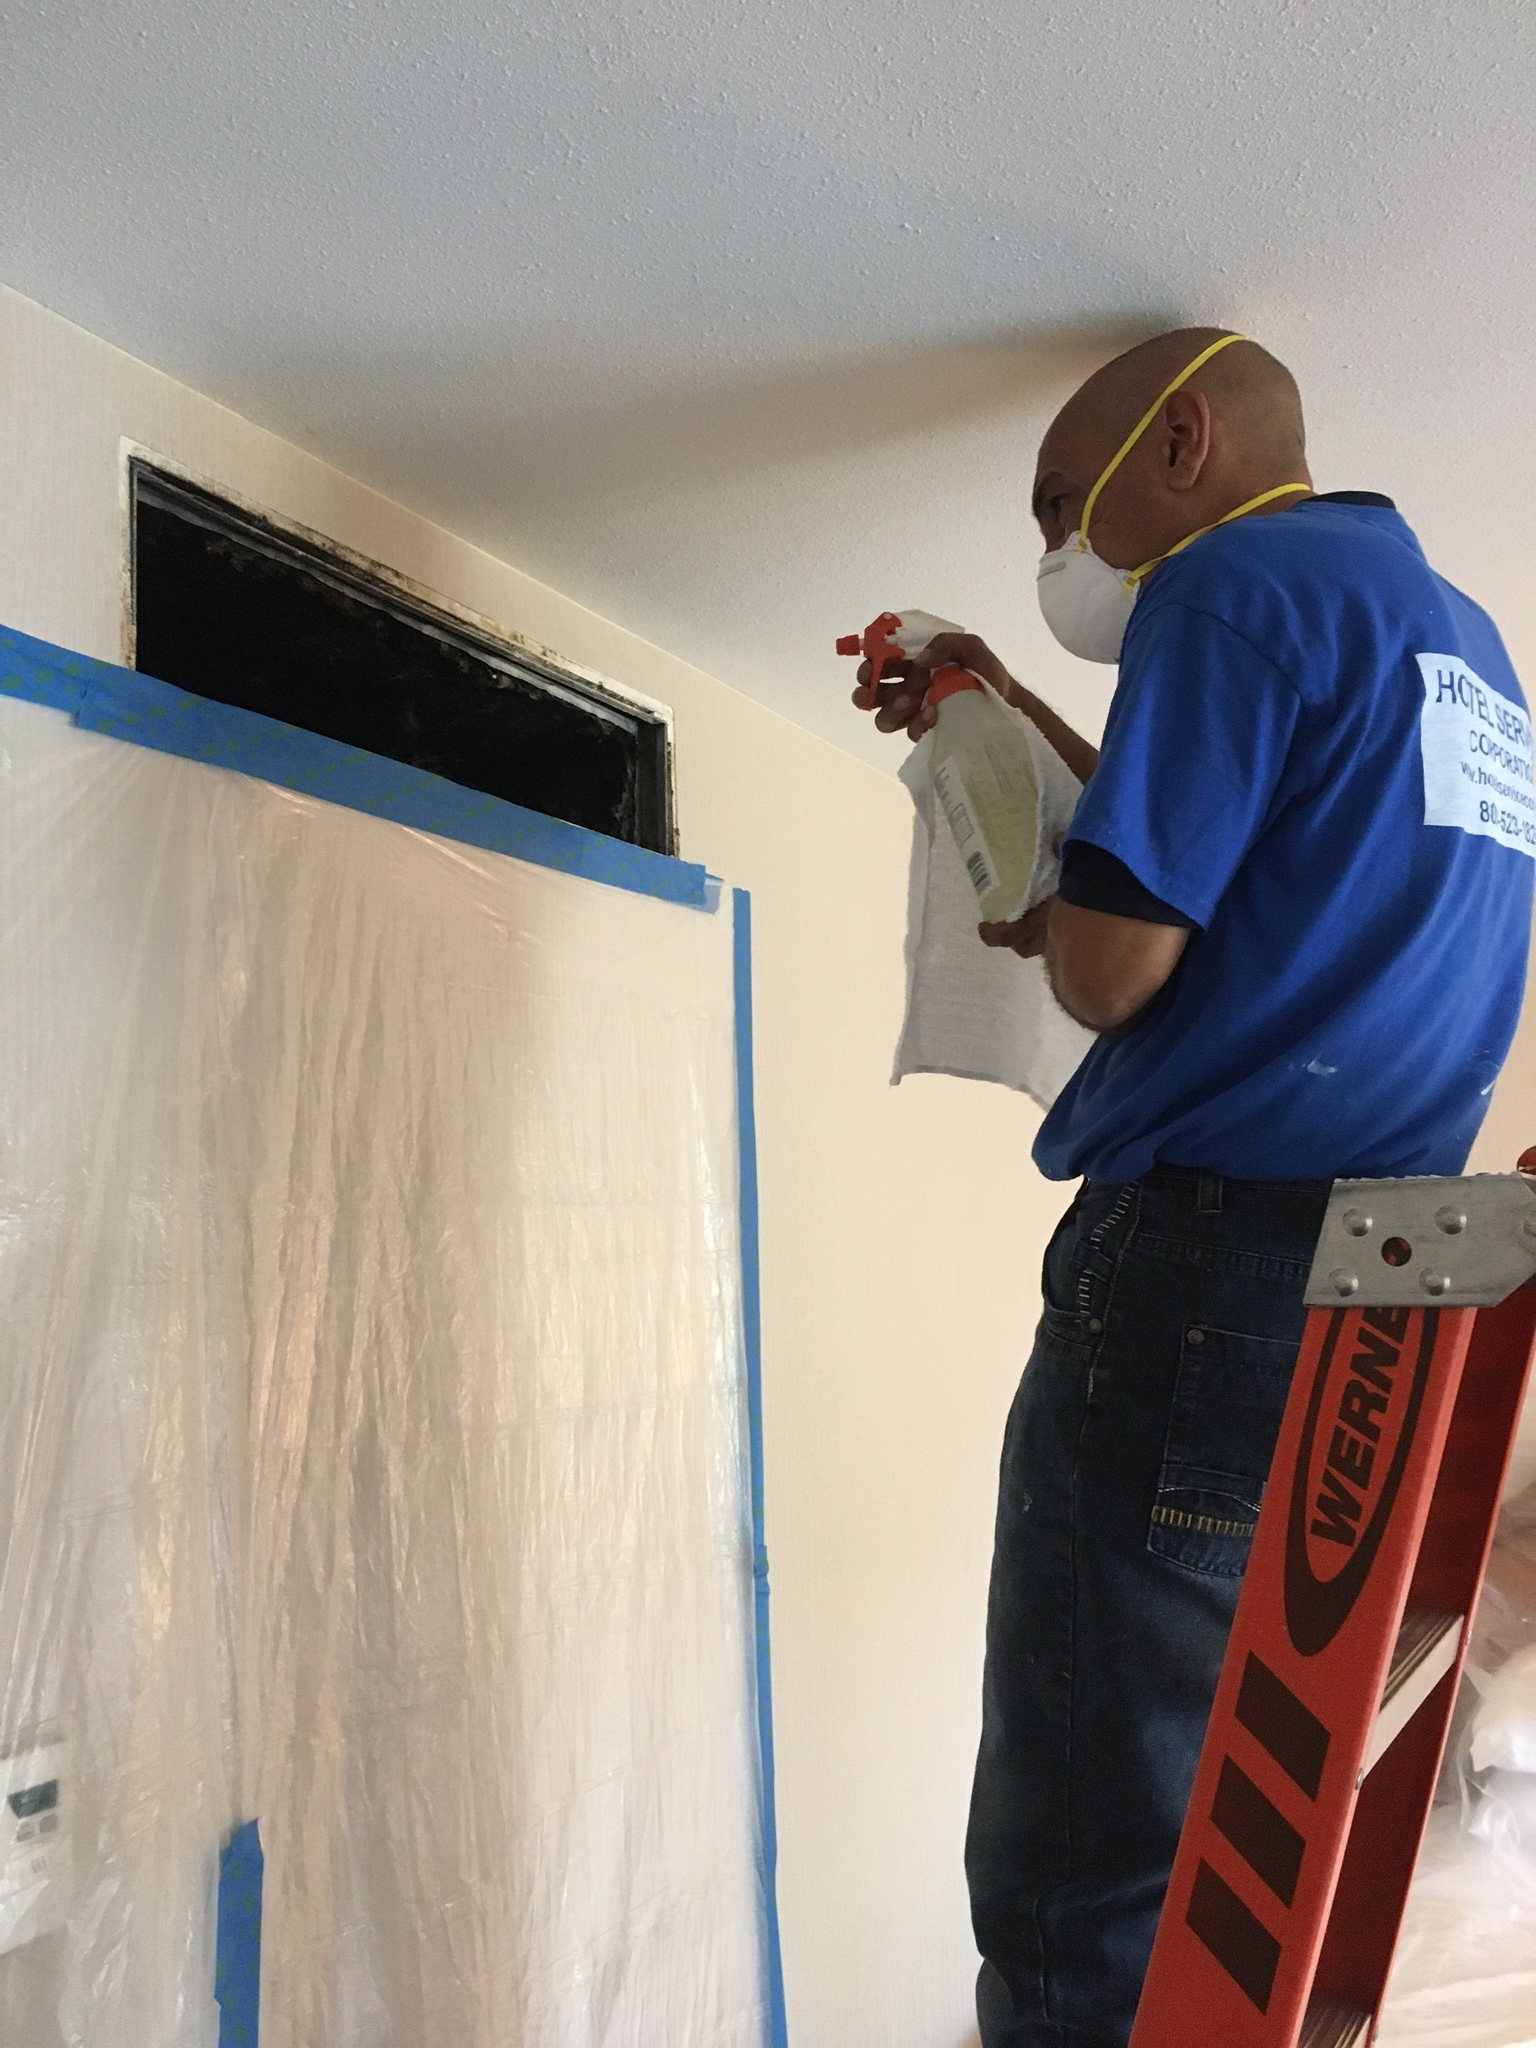 Applying antimicrobial agent into a guest room air duct